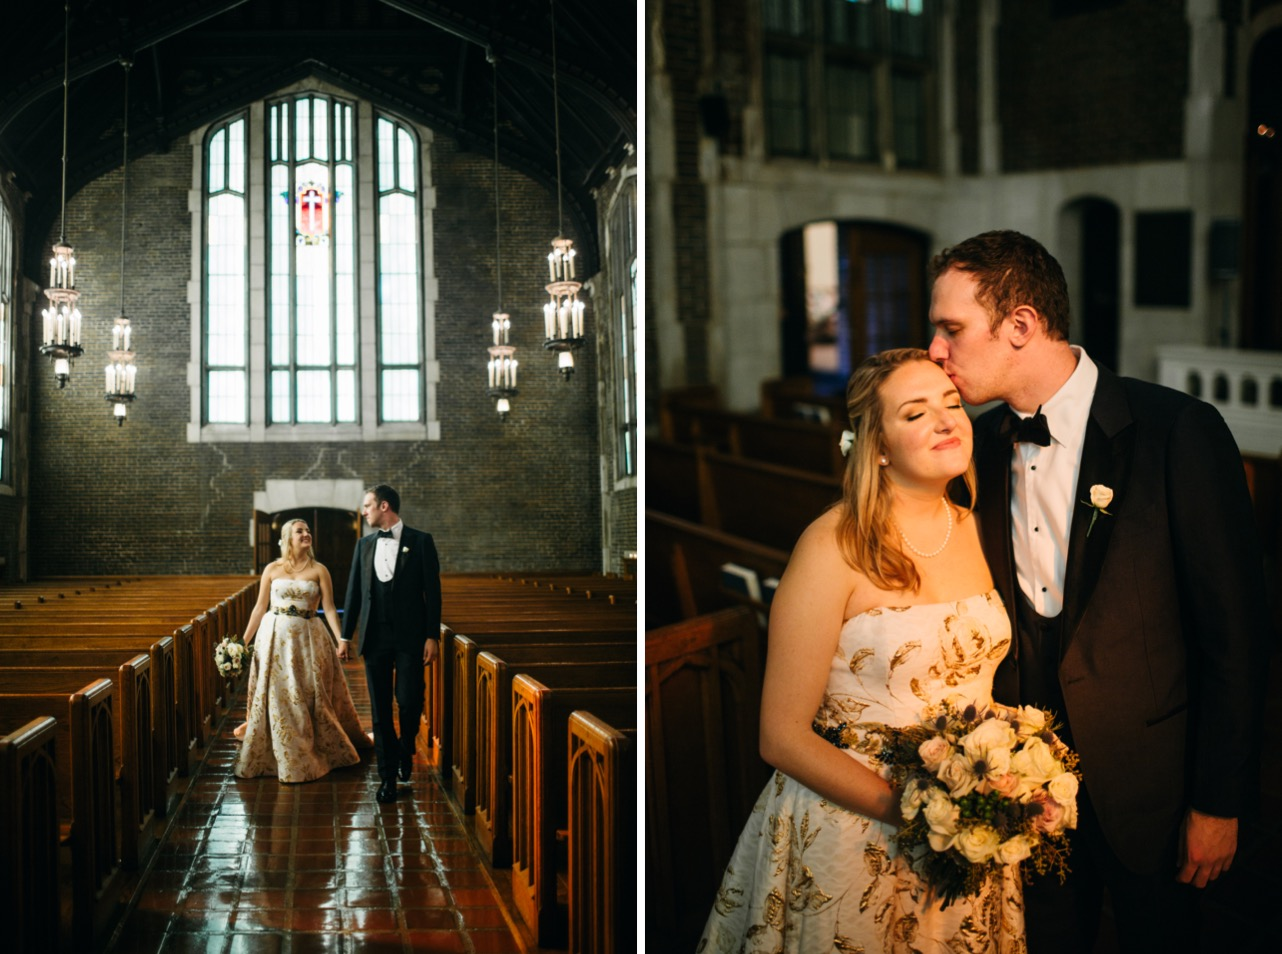 Bride and groom smile at eachother as they walk down the aisle. Groom kisses bride on forehead at their wedding in the Hunter Museum.